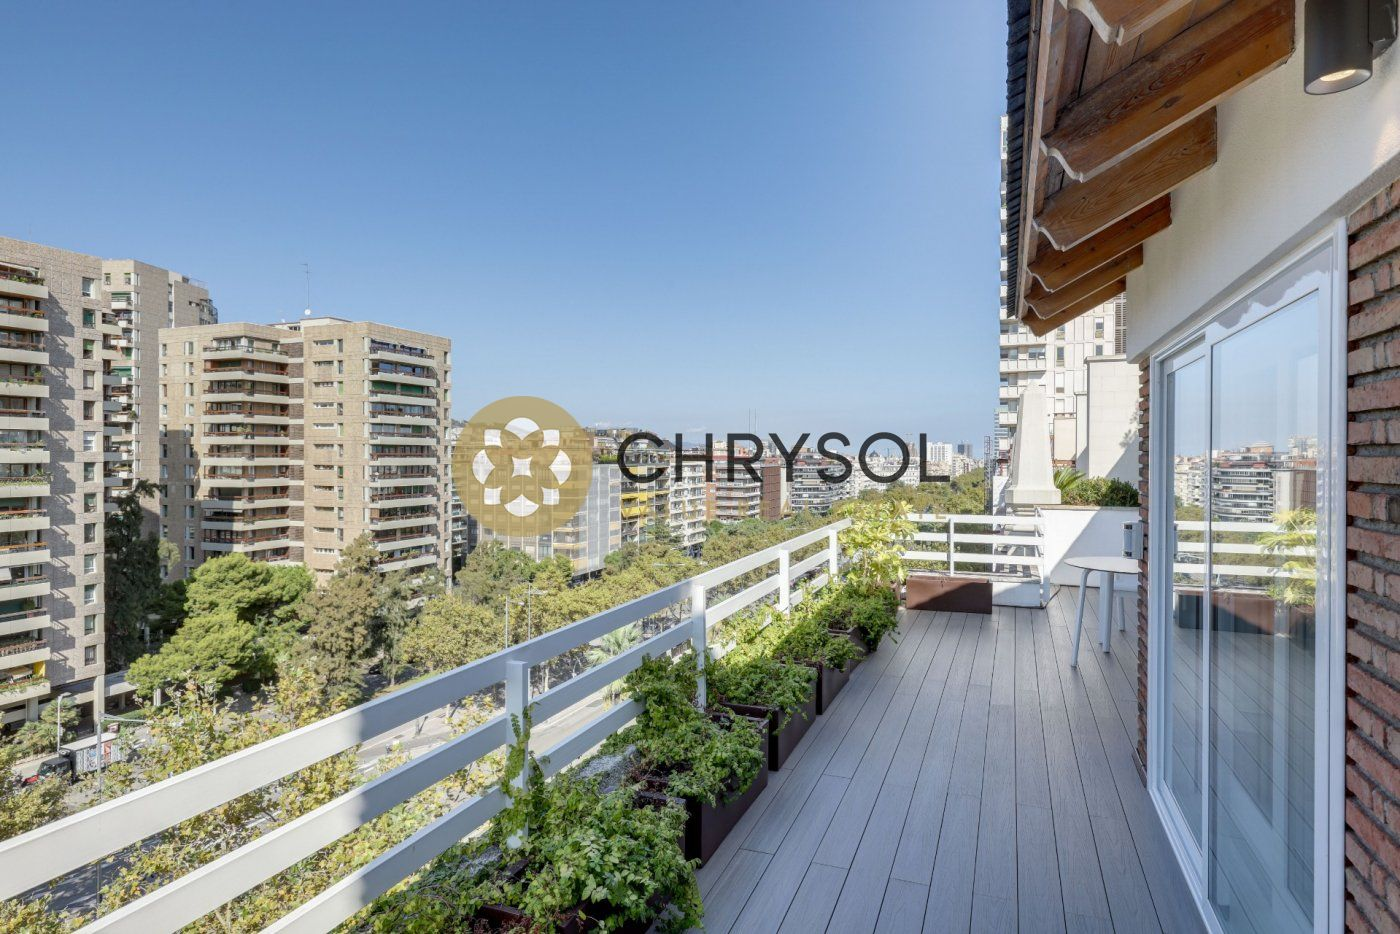 Photogallery - 50 - Chrysol Value